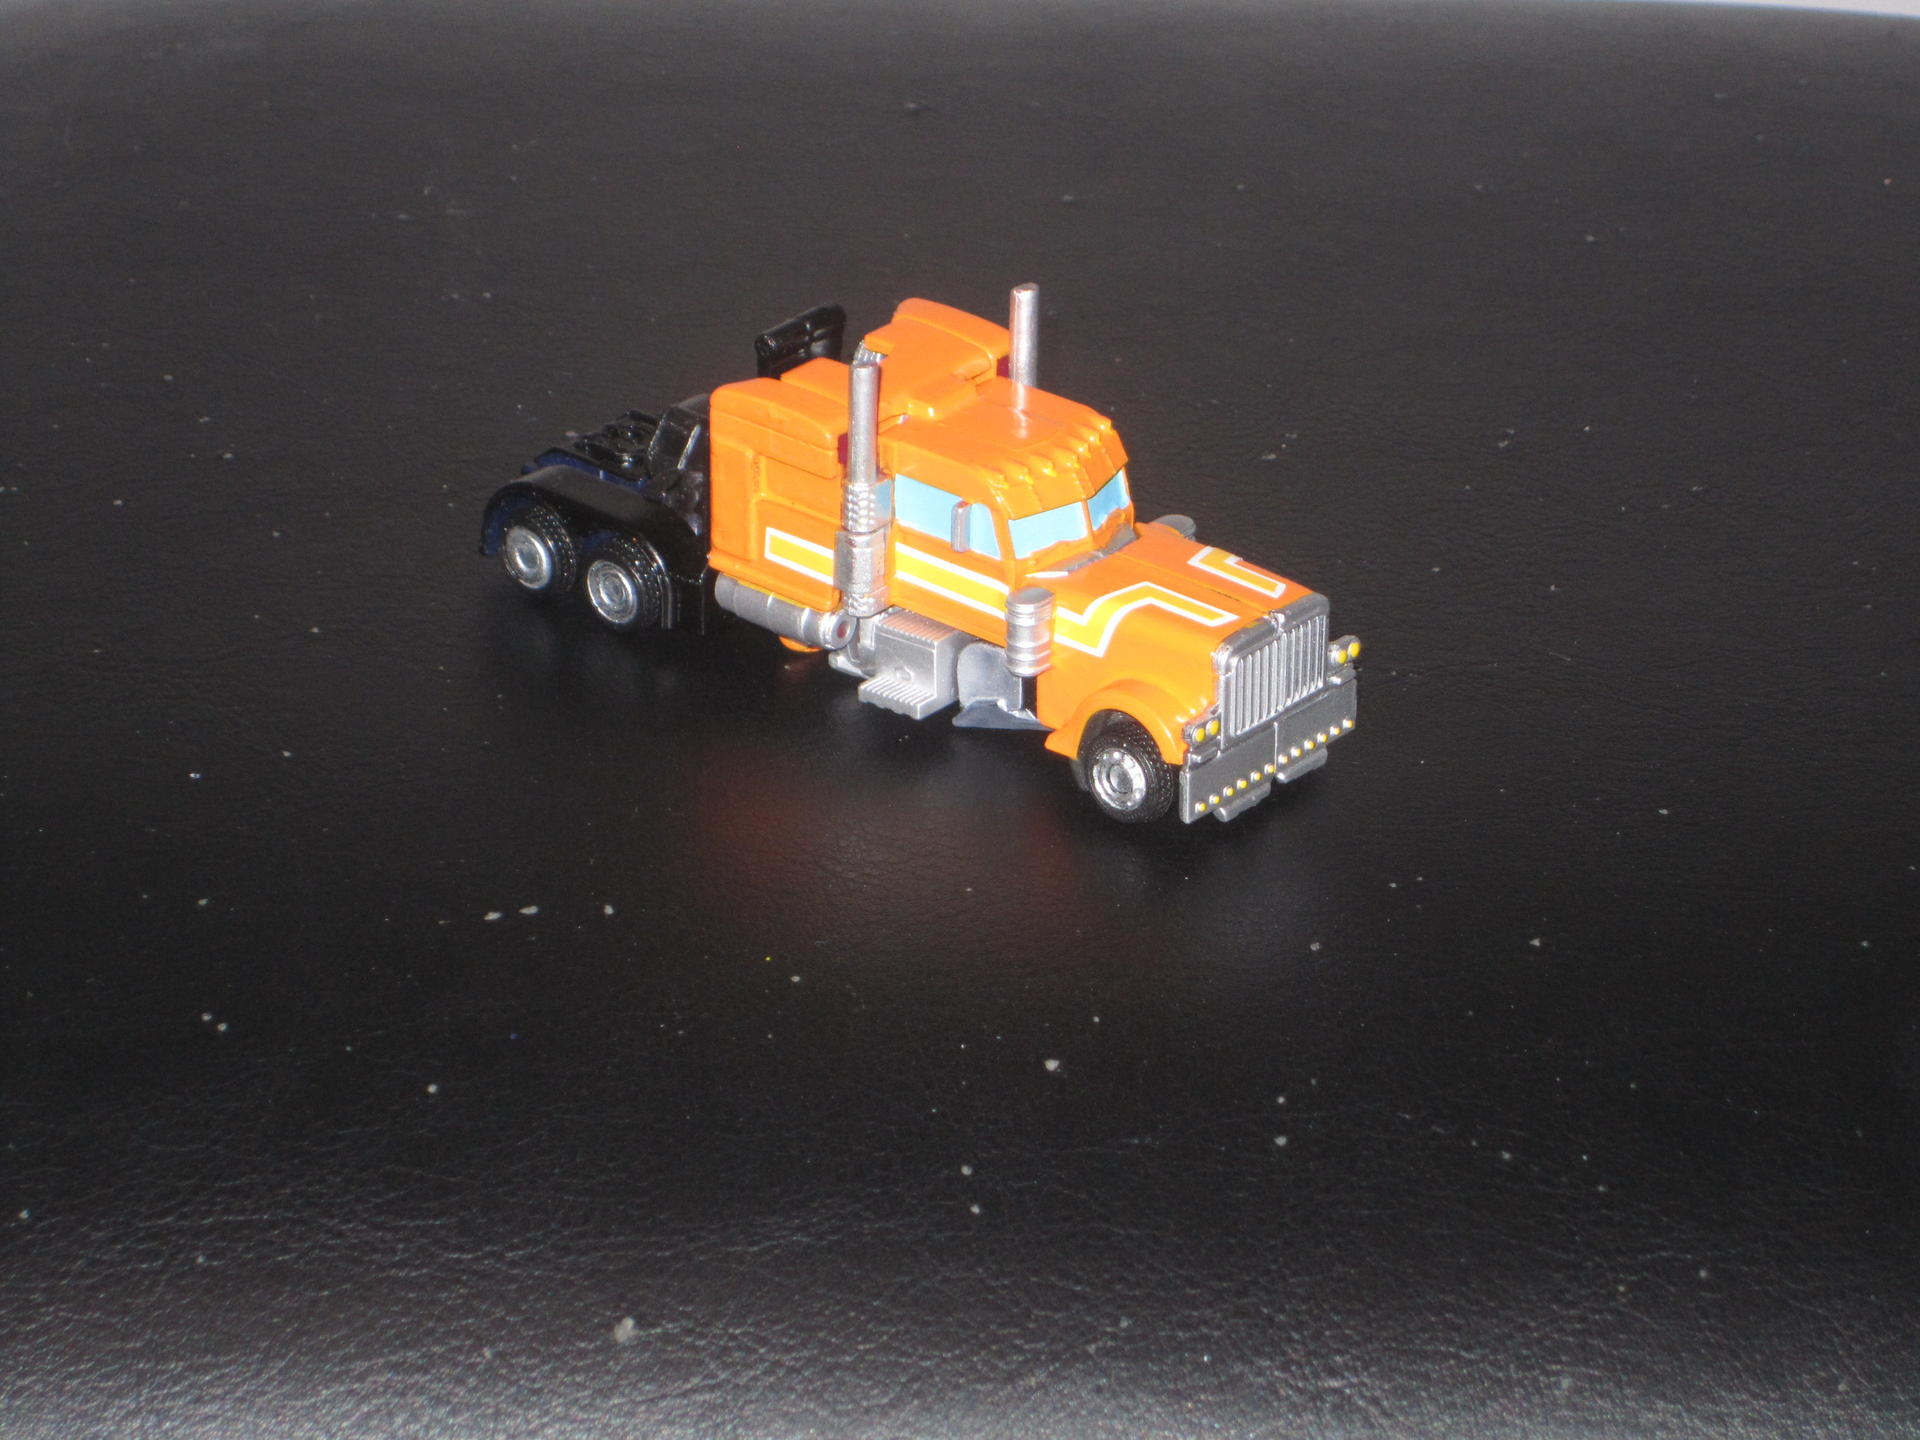 xover legends gobots staks-crossover-gobots-staks-010.jpg